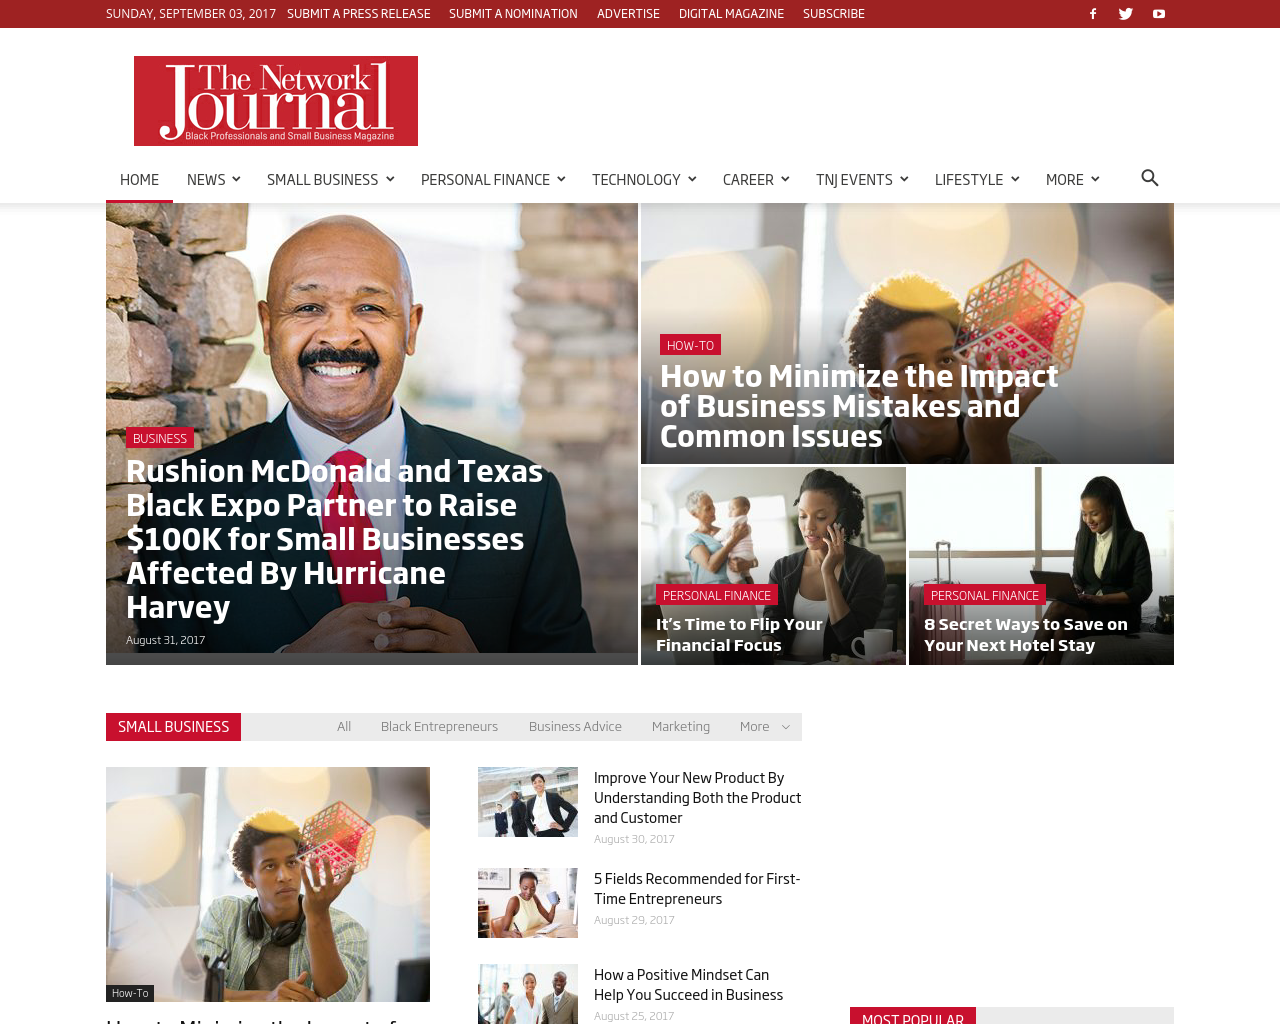 The-Network-Journal-Advertising-Reviews-Pricing